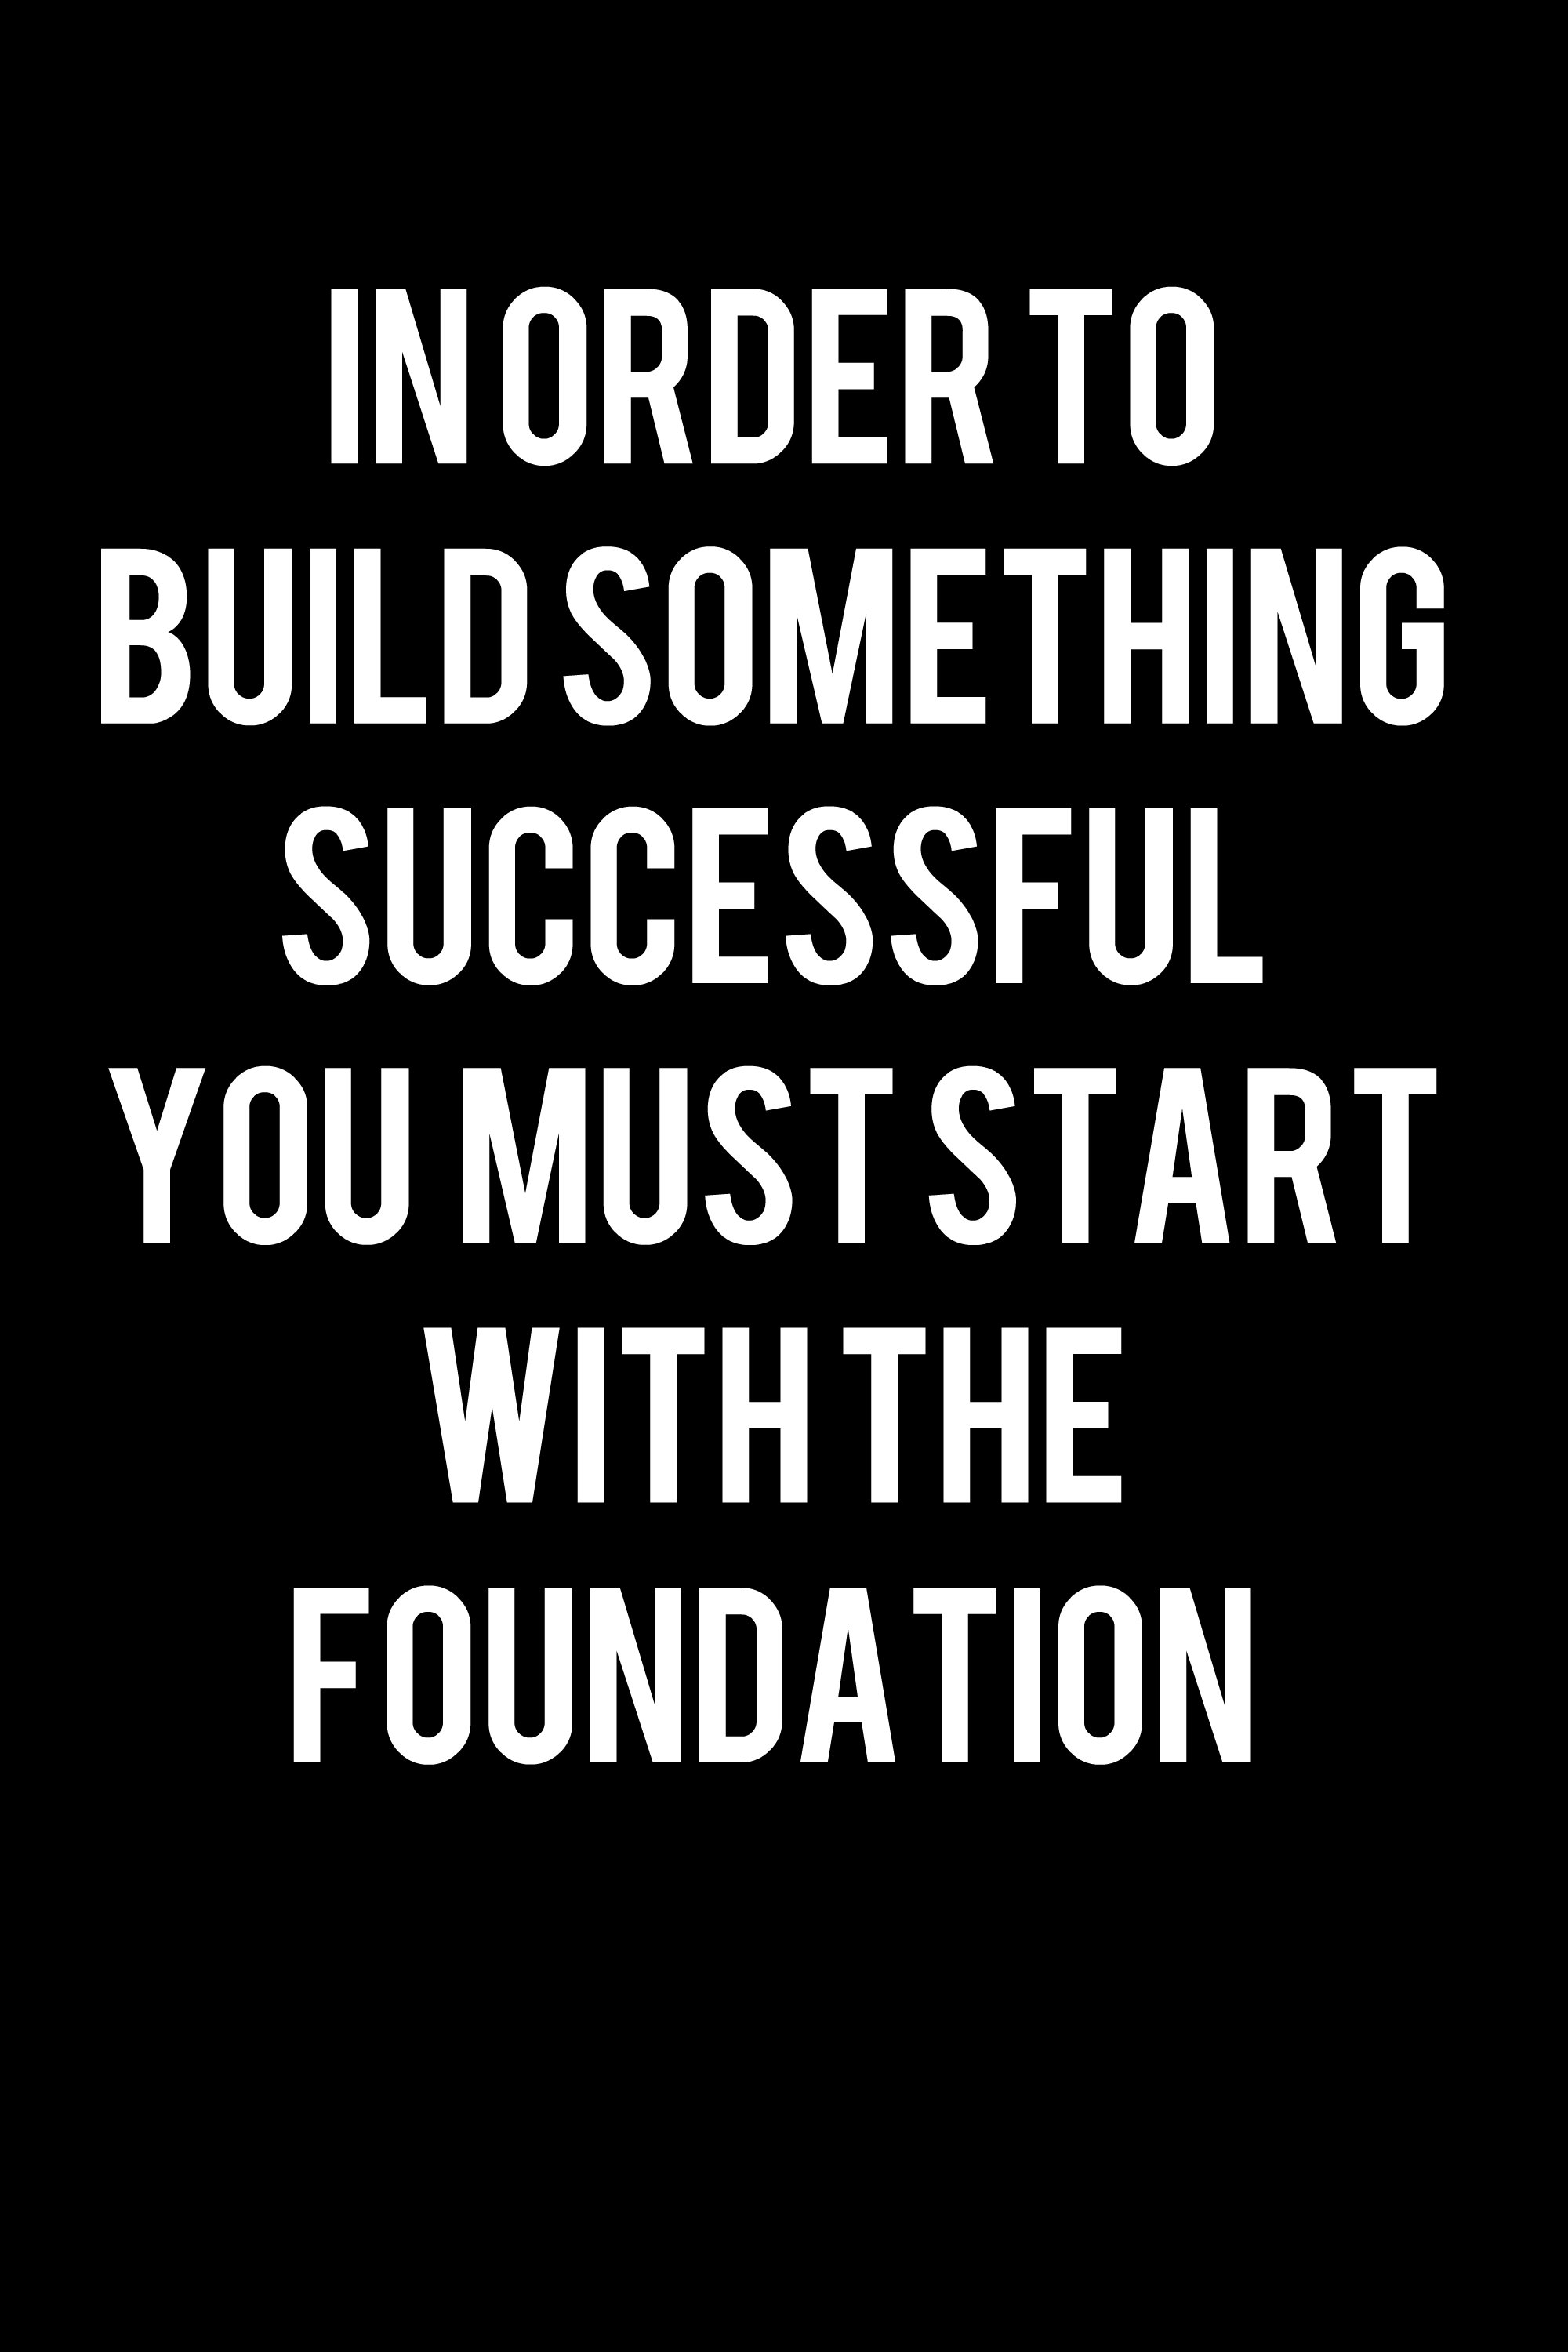 start with the foundation